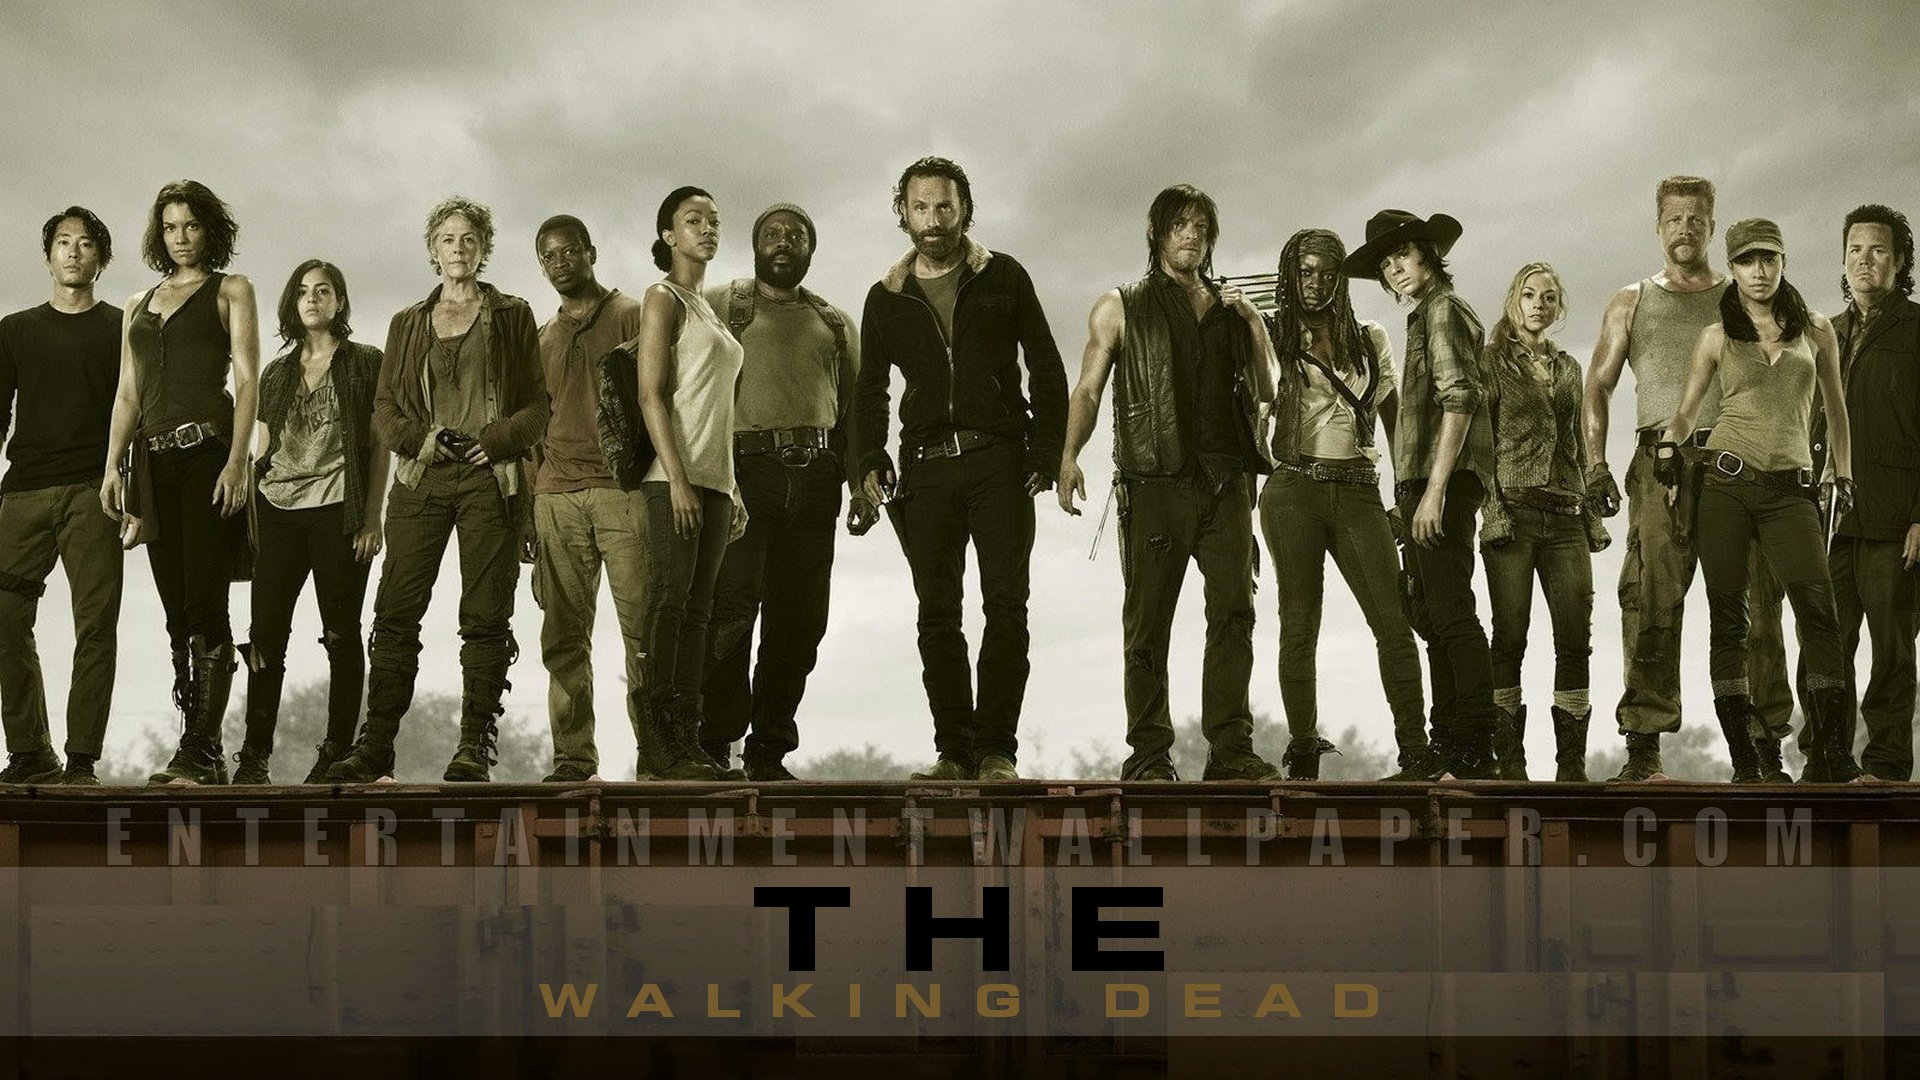 The Walking Dead Wallpapers, Amazing High Resolution The Walking